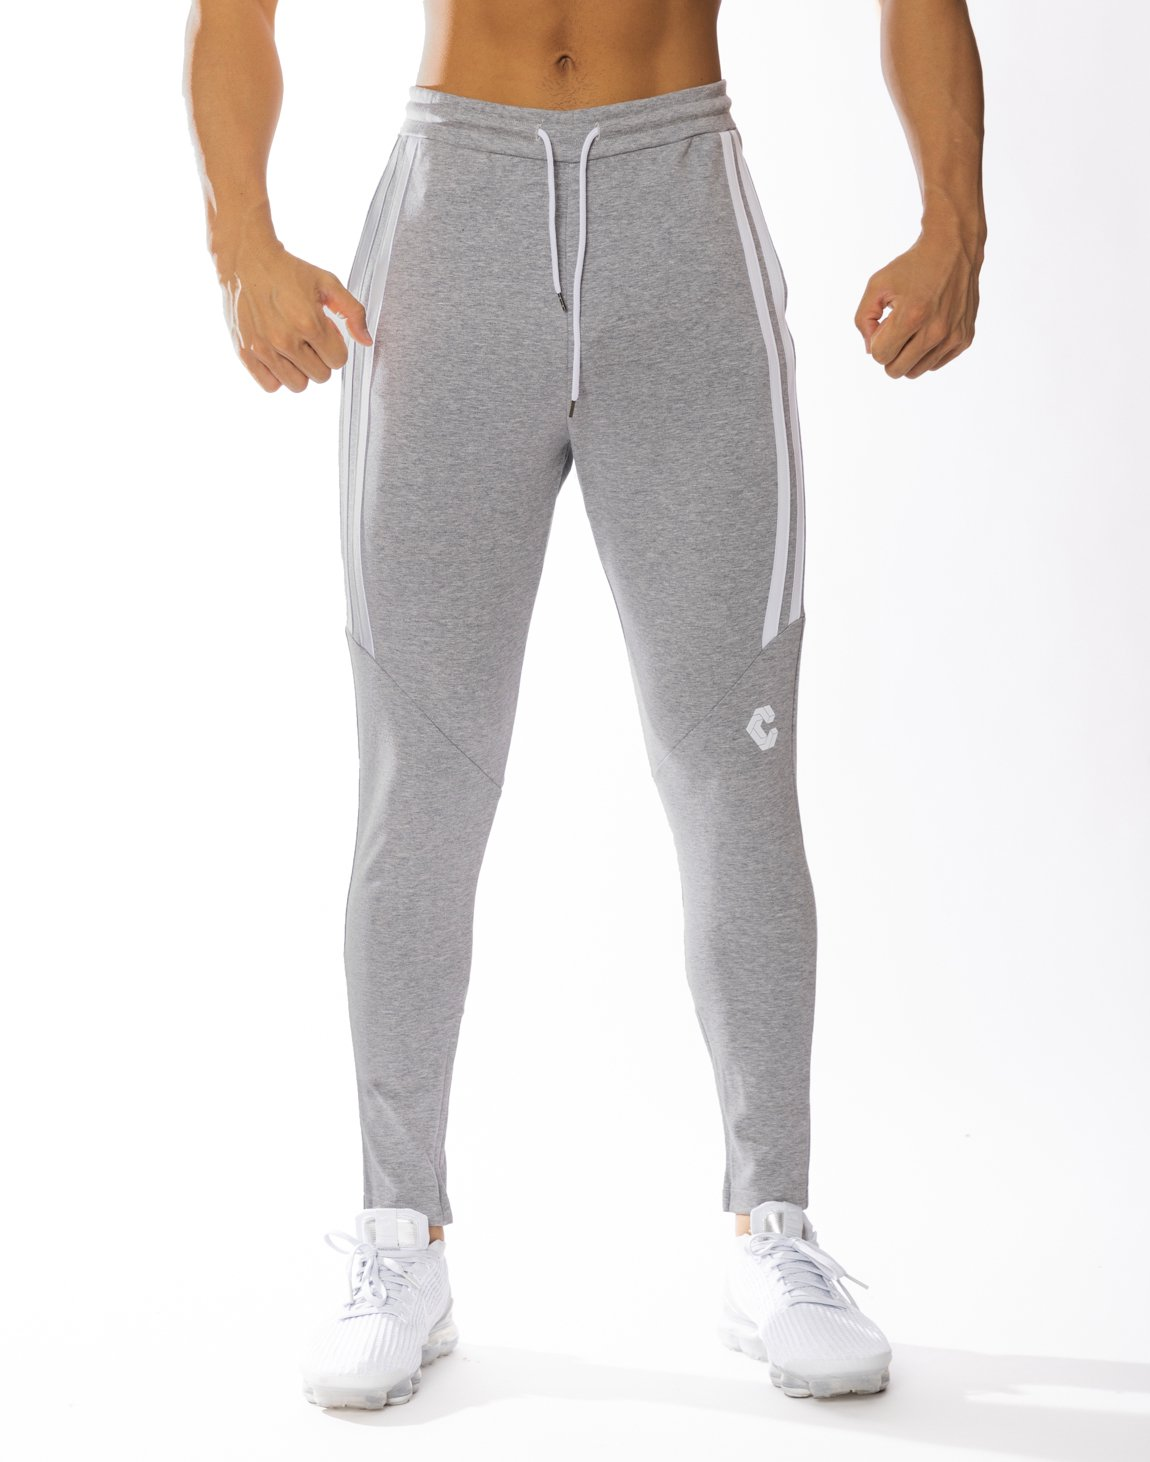 <img class='new_mark_img1' src='https://img.shop-pro.jp/img/new/icons1.gif' style='border:none;display:inline;margin:0px;padding:0px;width:auto;' />CRONOS HALF 2STRIPE CALF LOG PANTS 【GRAY】